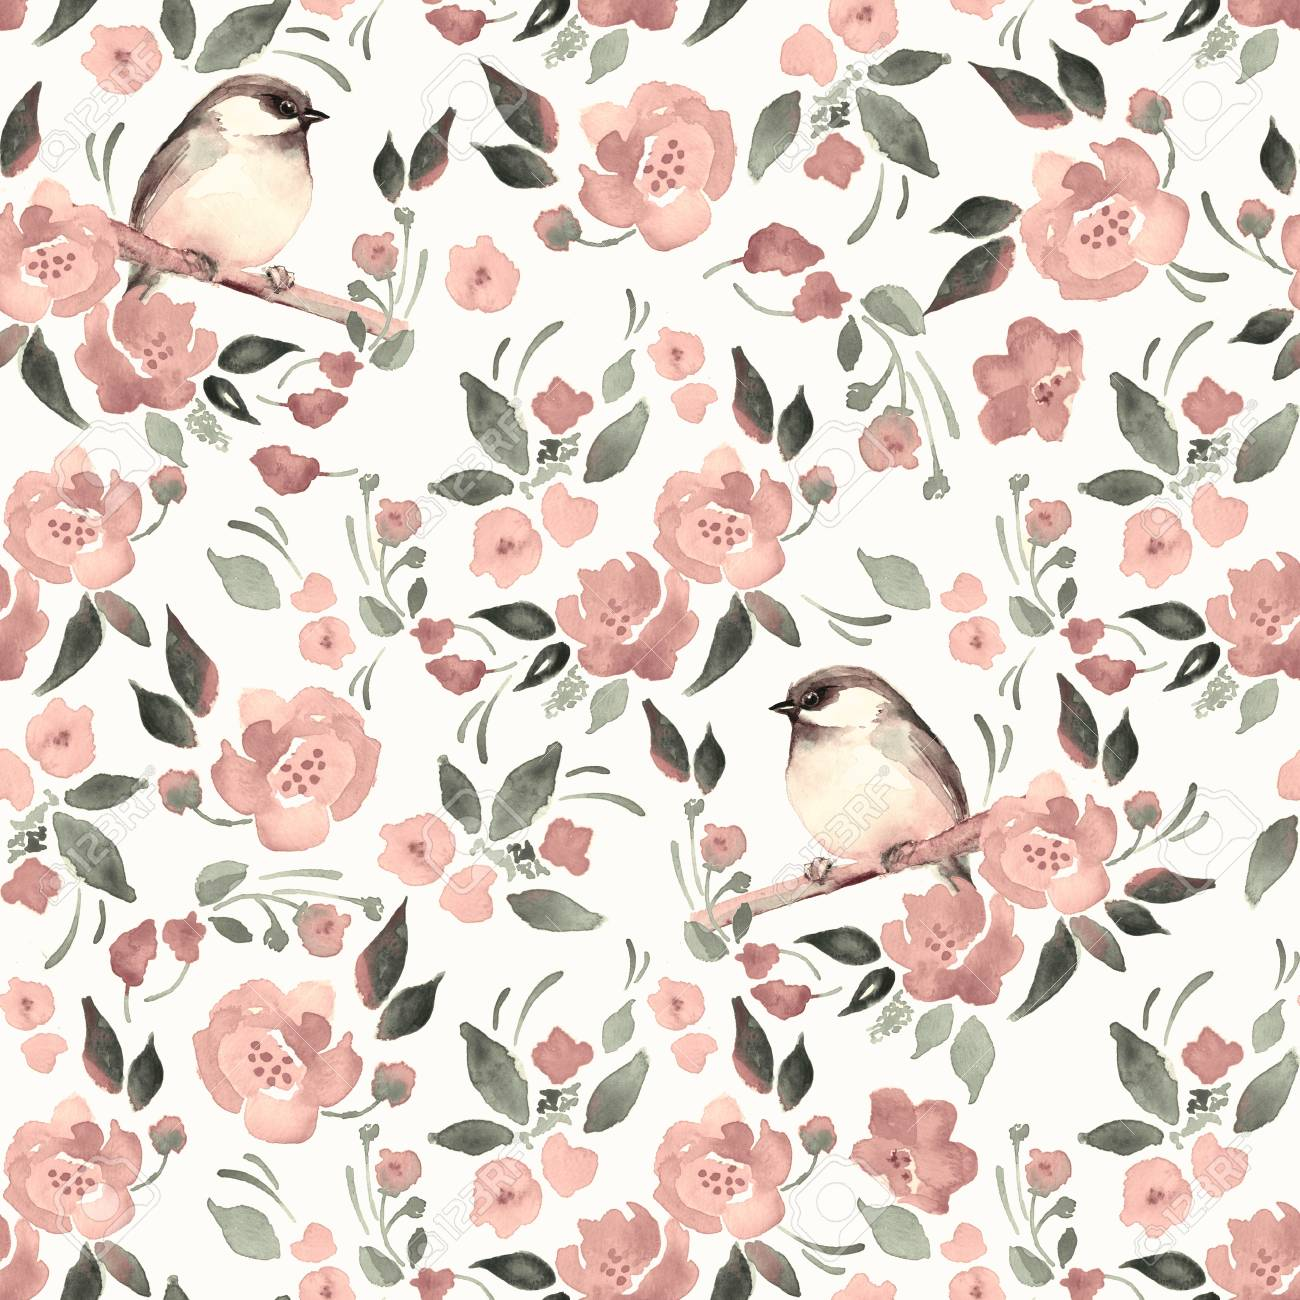 Watercolor Floral Background With A Cute Bird 16 Stock Photo